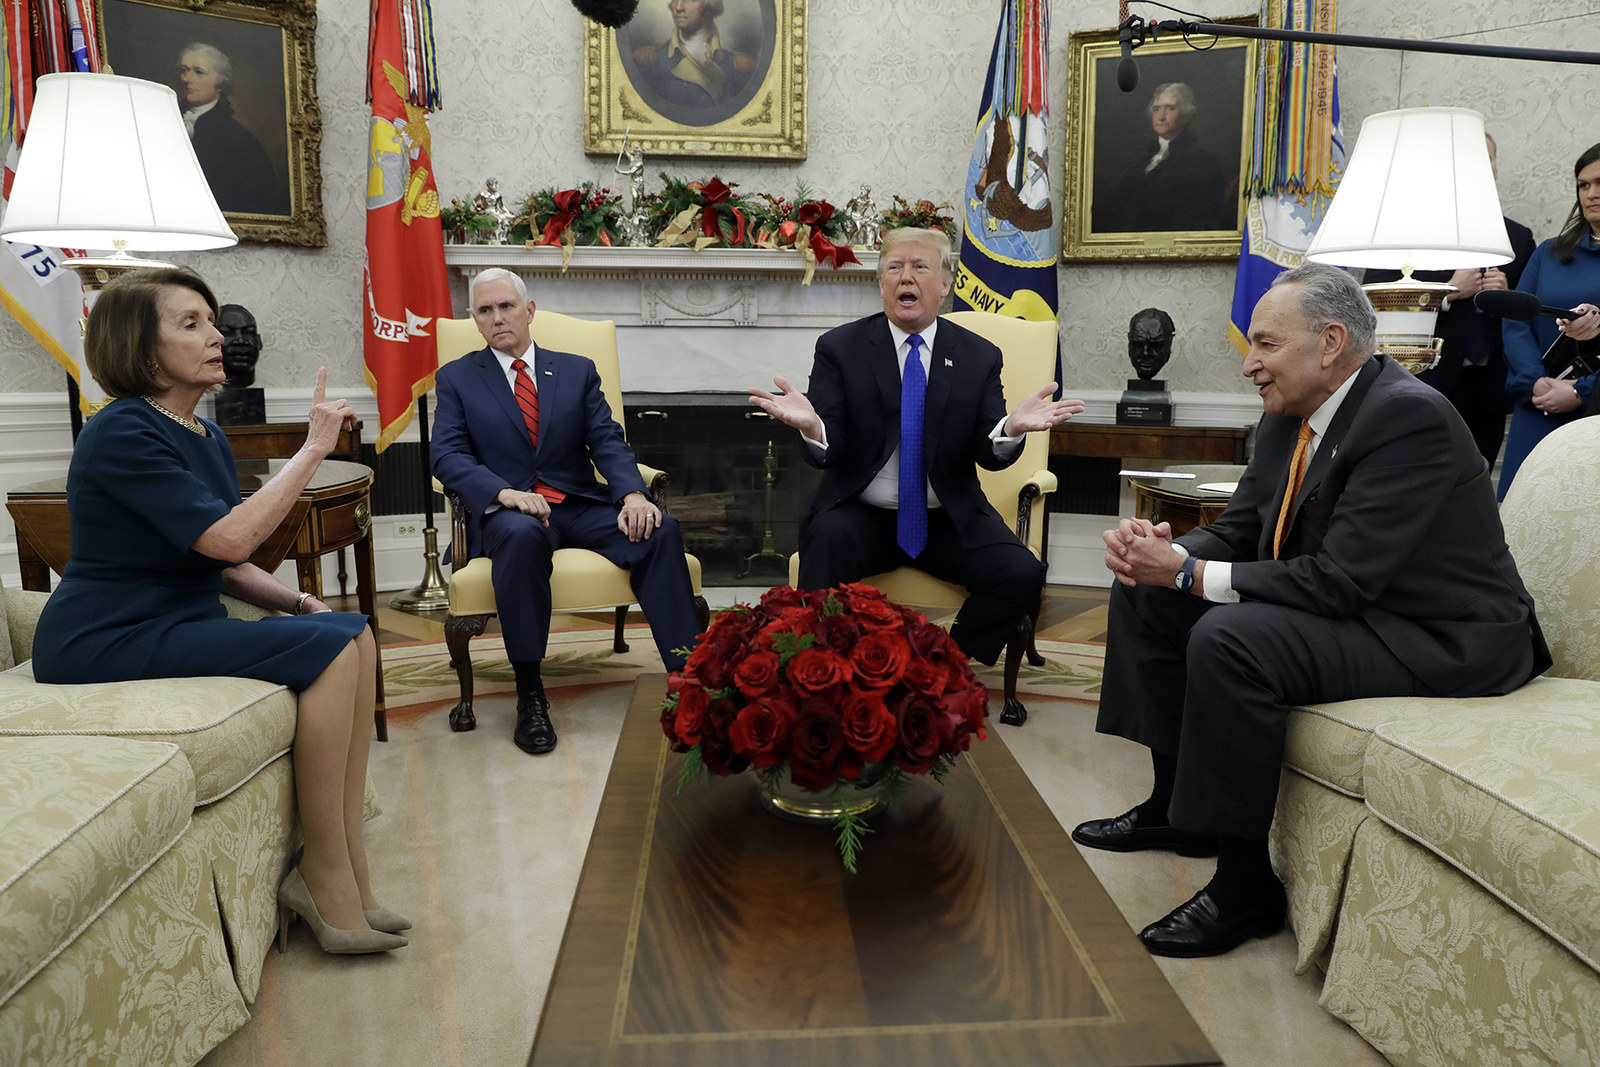 Trump and Vice President Mike Pence with Senate Minority Leader Chuck Schumer and House Minority Leader Nancy Pelosi on Dec. 11.